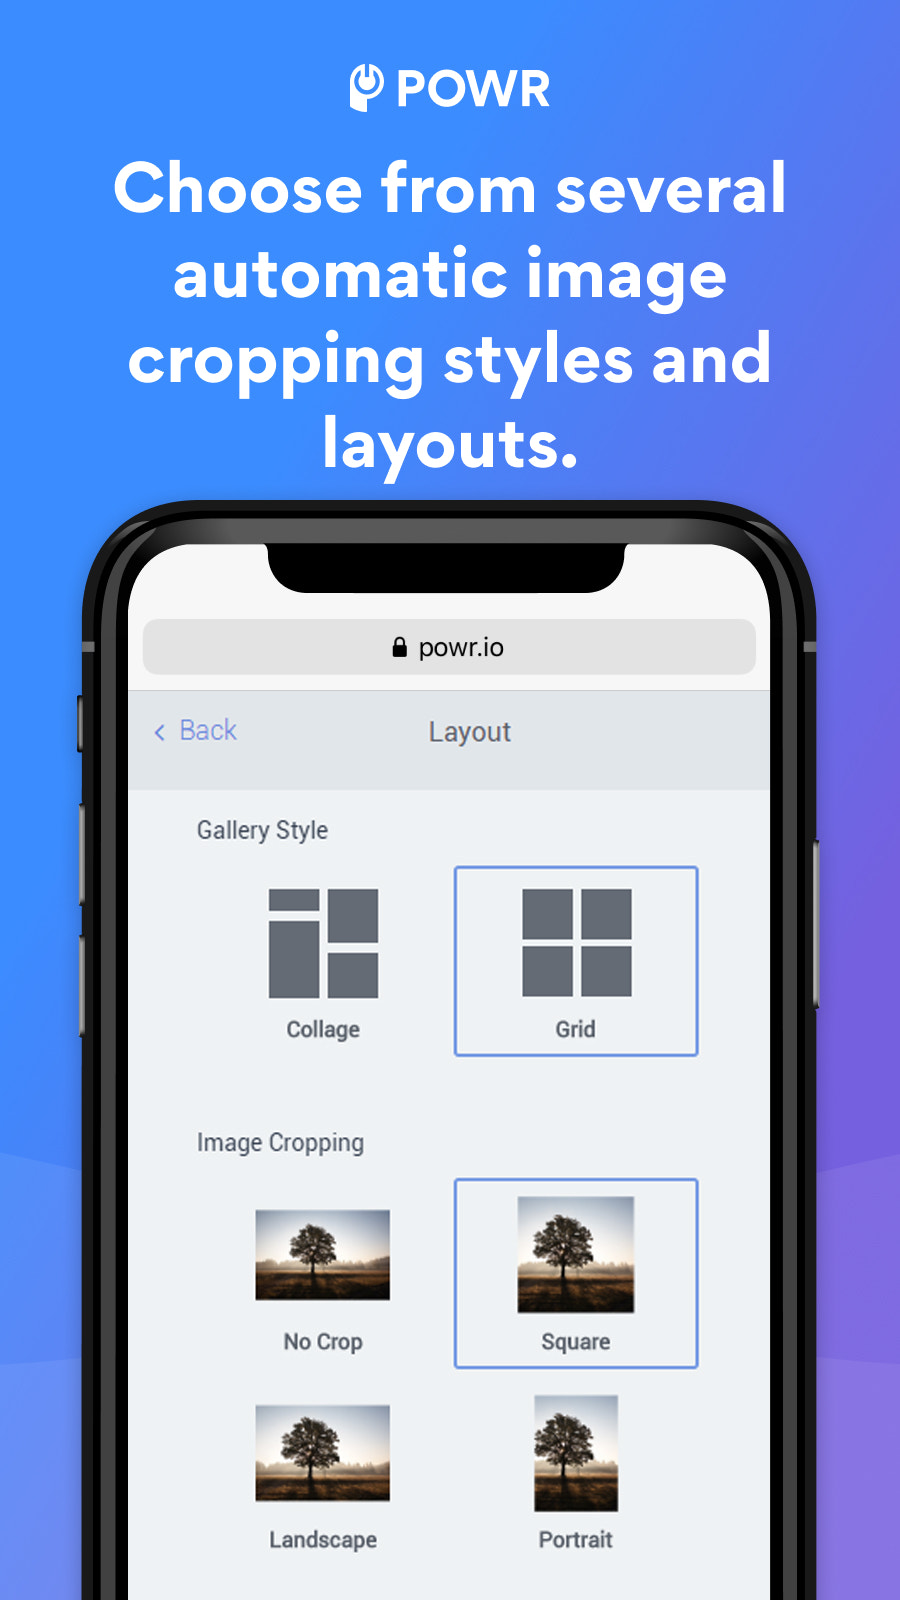 Choose from several automatic image cropping styles and layouts.